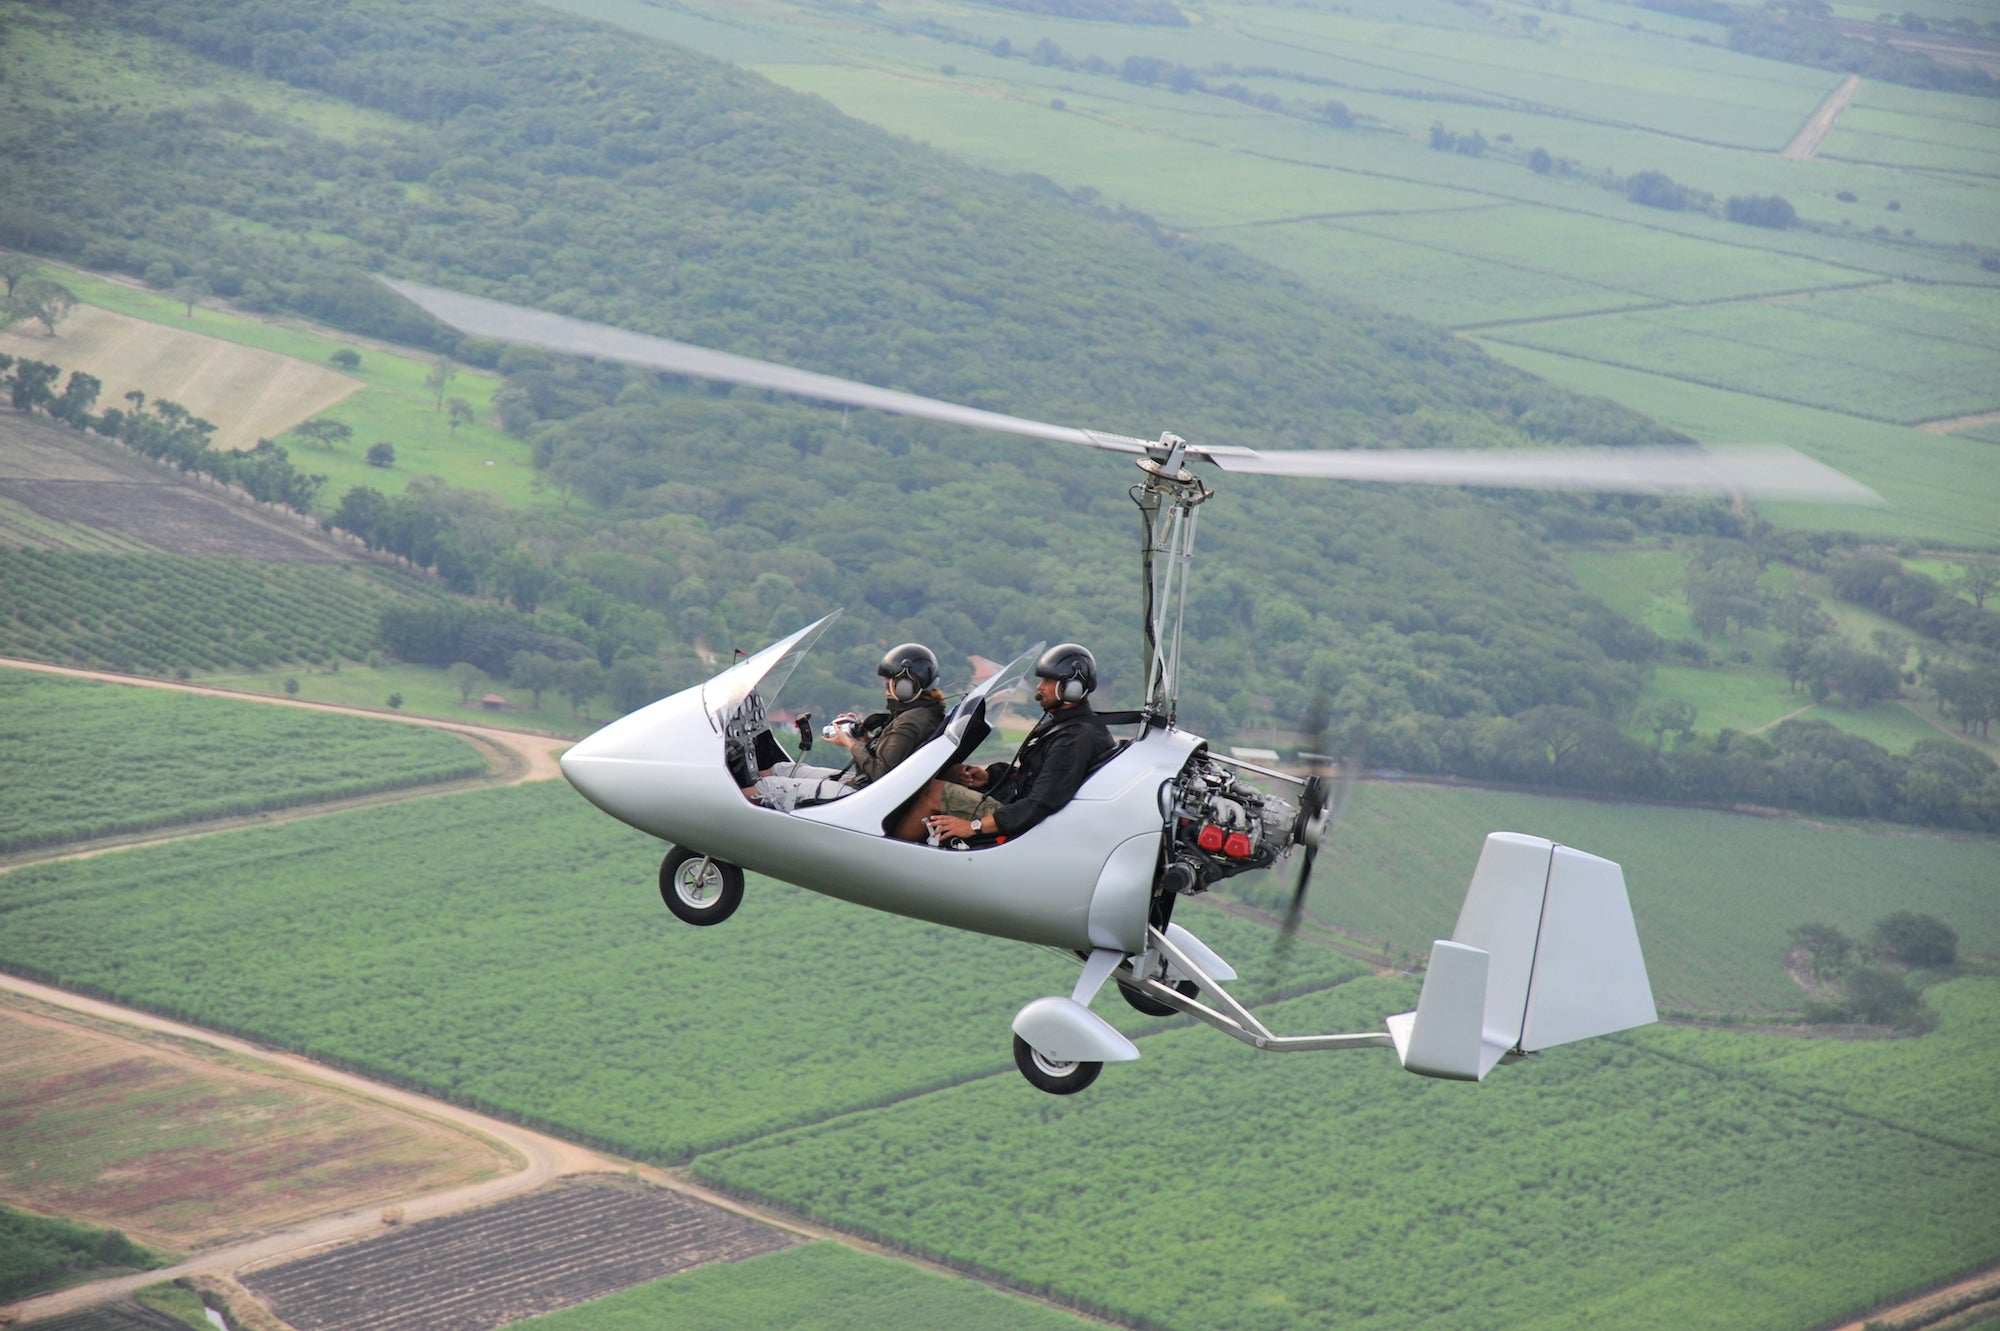 Club Fearless Test #27 Ride in an ultralight aircraft